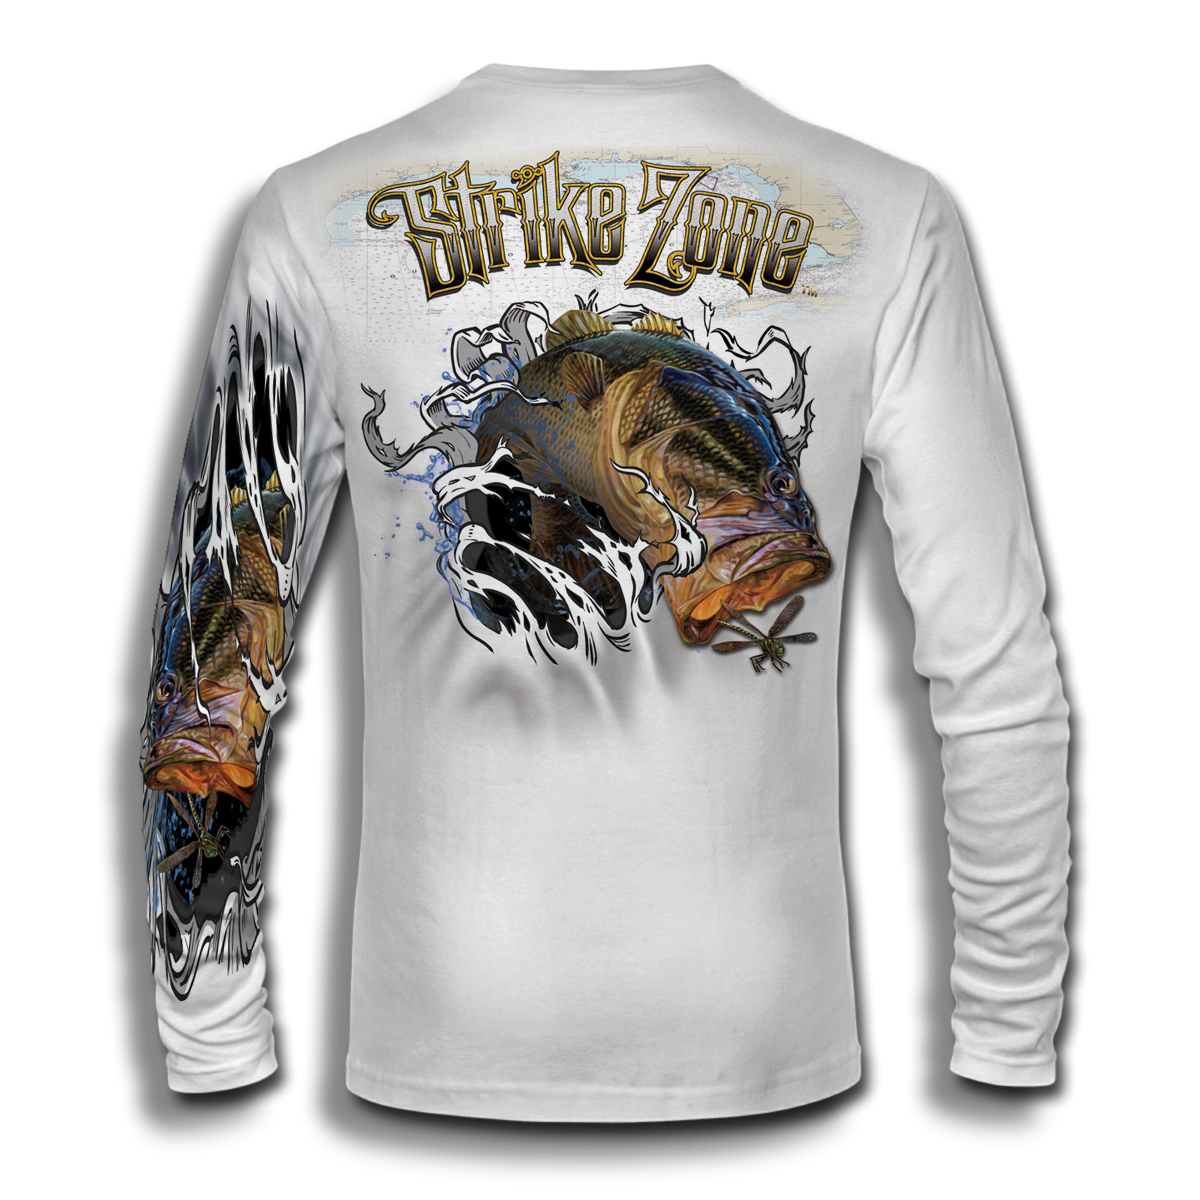 jason-mathias-strike-zone-white-back-bass-fishing-shirt.png